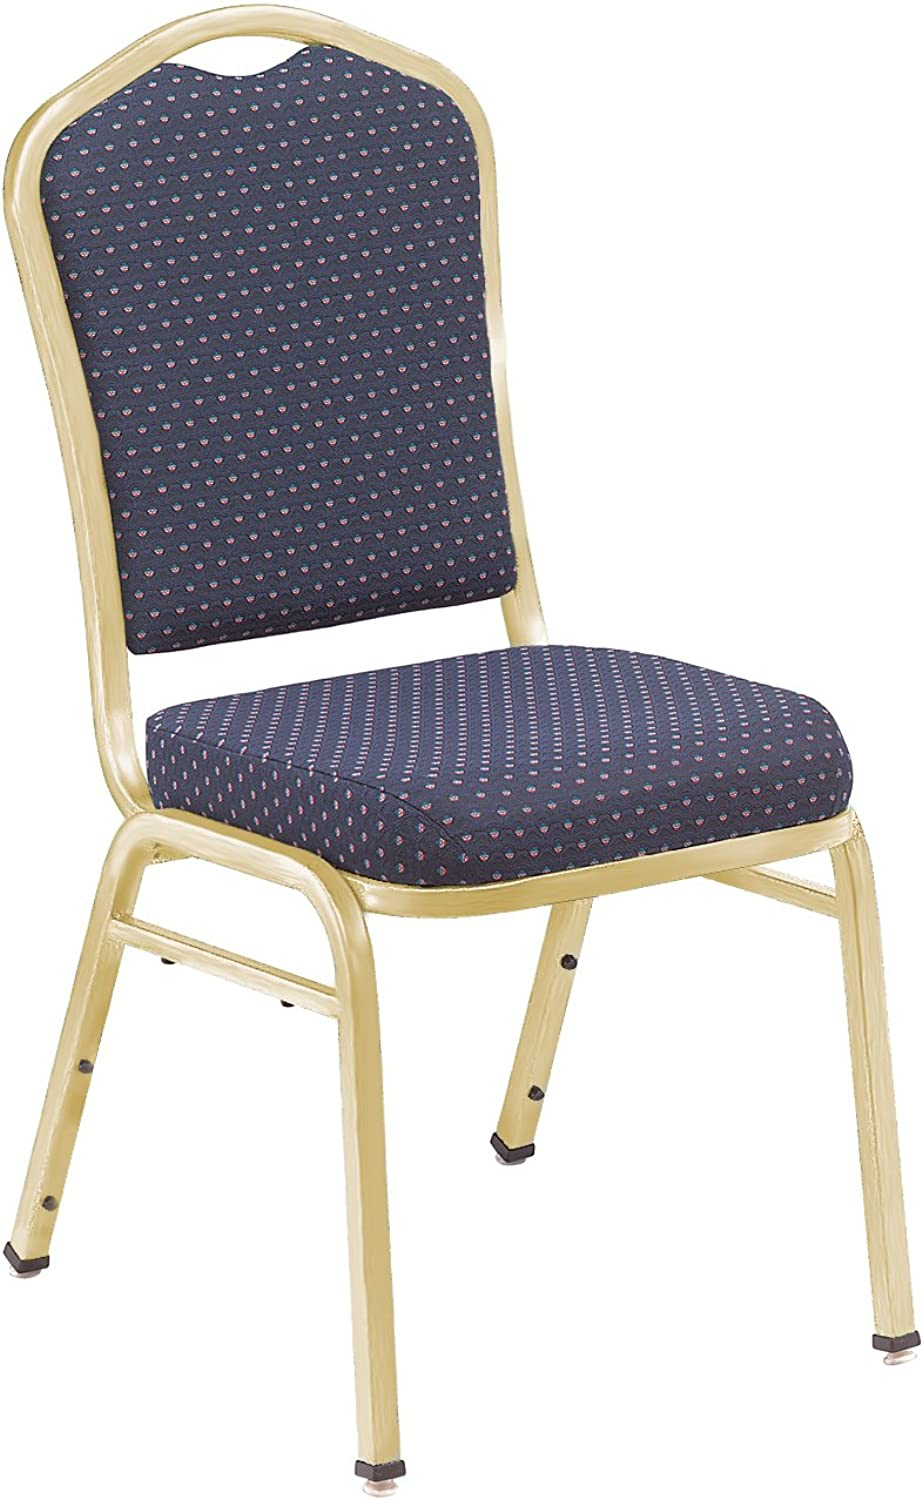 NPS 9364-G Fabric-Upholstered Crown Back Silhouette Stack Chair with Steel gold Frame, 300-Pound Capacity, 17-Inch Length x 23-Inch Width x 36-Inch Height, Diamond Navy